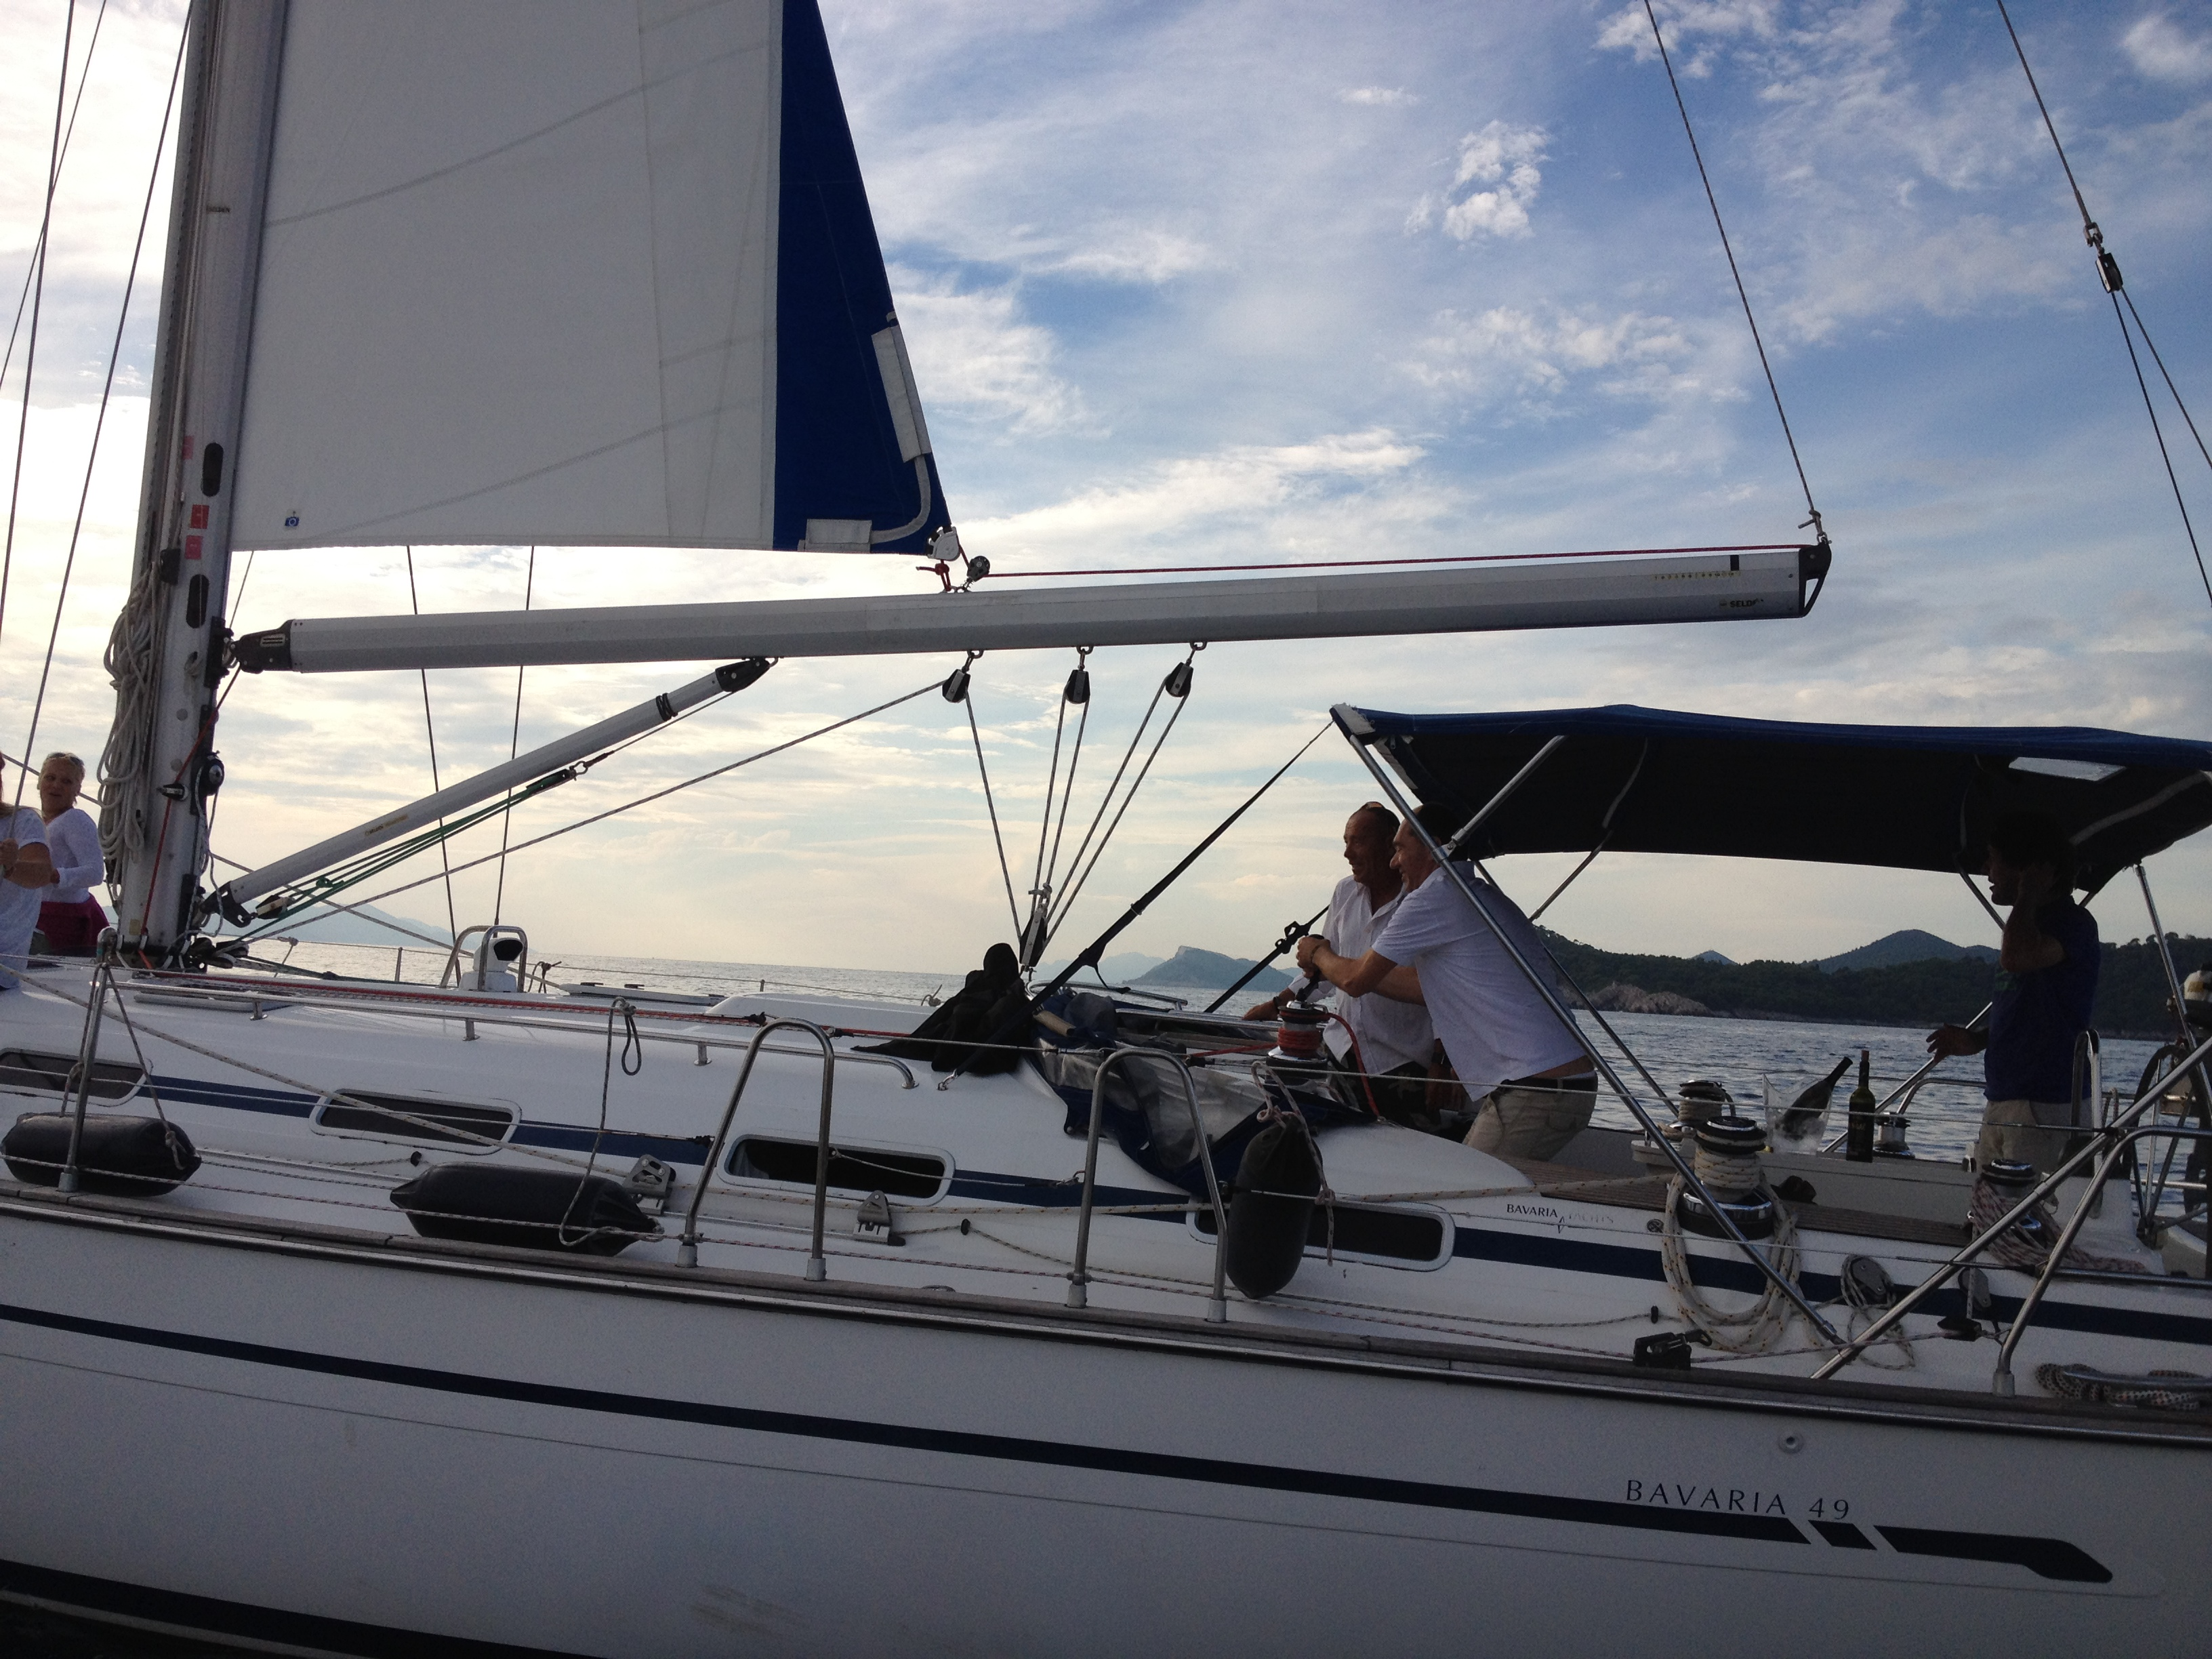 Sailing Regatta memebers take turns to captain boat